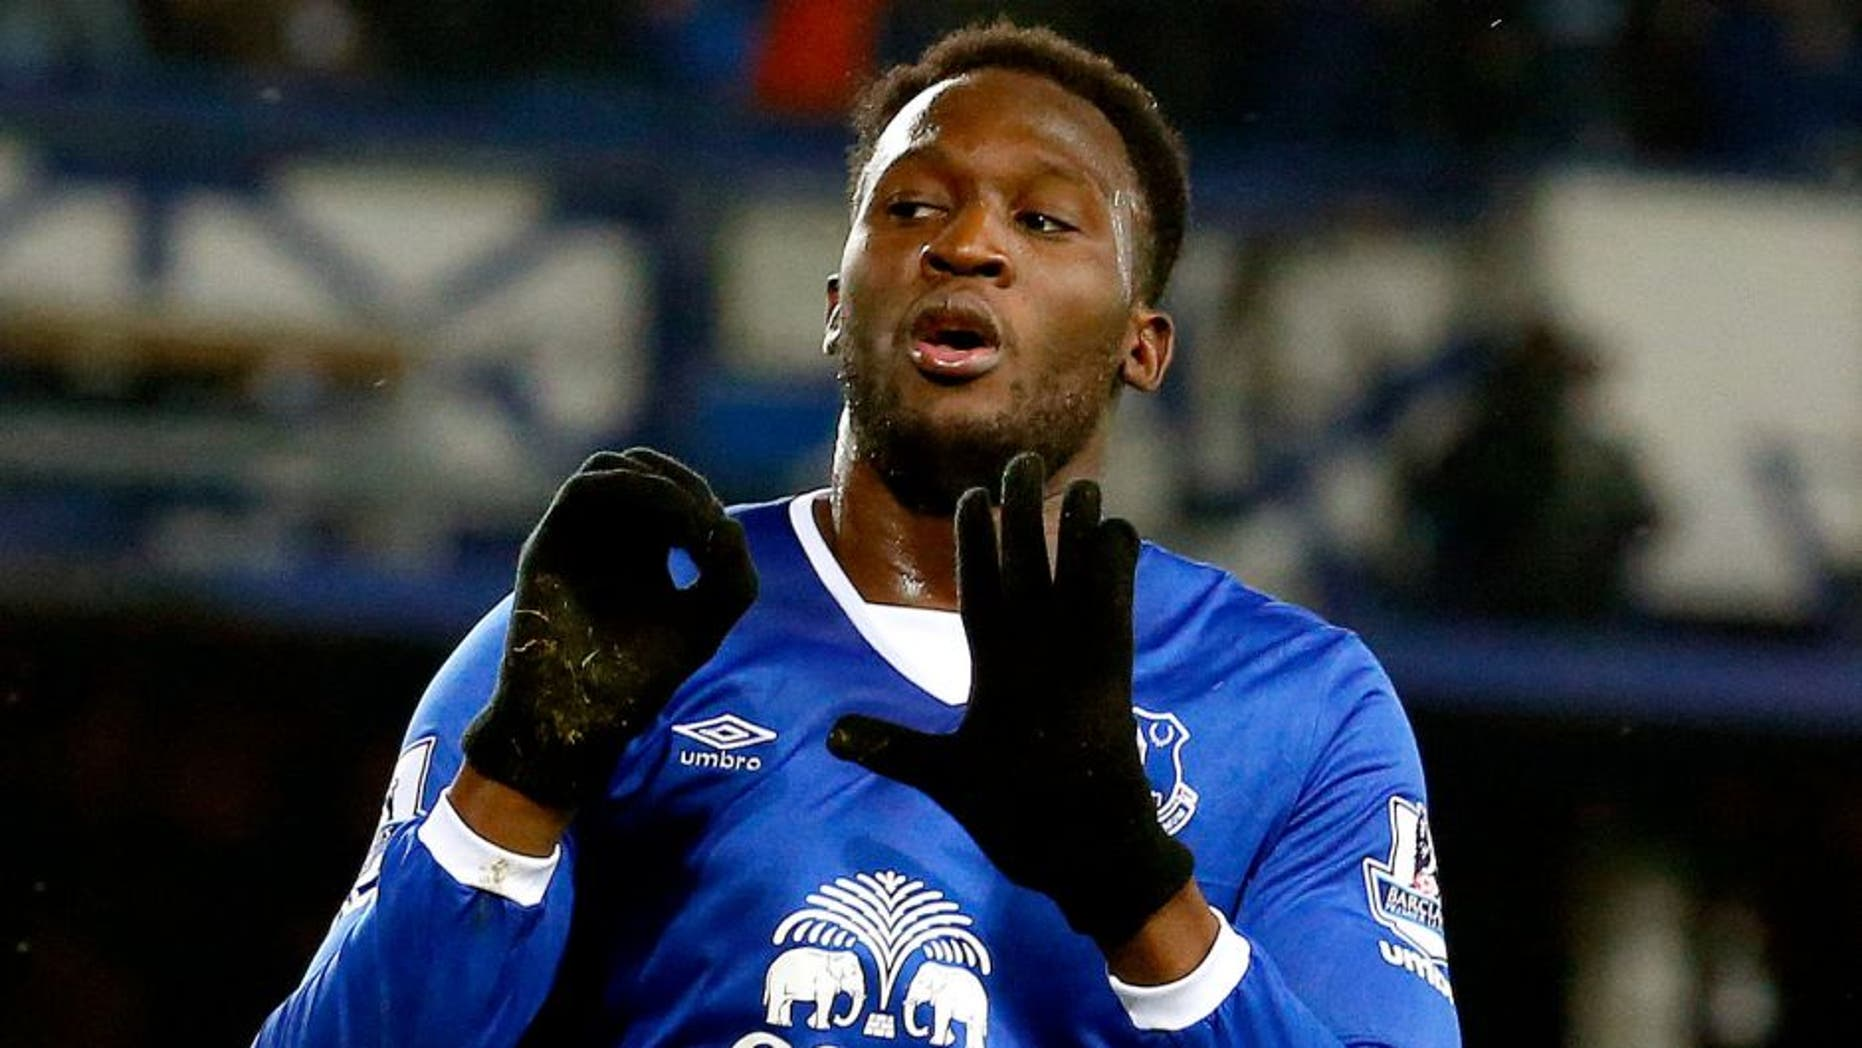 Everton's Belgian striker Romelu Lukaku celebrates scoing his team's first goal during the English Premier League football match between Everton and Crystal Palace at Goodison Park in Liverpool on December 7, 2015. AFP PHOTO / LINDESY PARNABY RESTRICTED TO EDITORIAL USE. No use with unauthorized audio, video, data, fixture lists, club/league logos or 'live' services. Online in-match use limited to 75 images, no video emulation. No use in betting, games or single club/league/player publications. / AFP / LINDSEY PARNABY (Photo credit should read LINDSEY PARNABY/AFP/Getty Images)